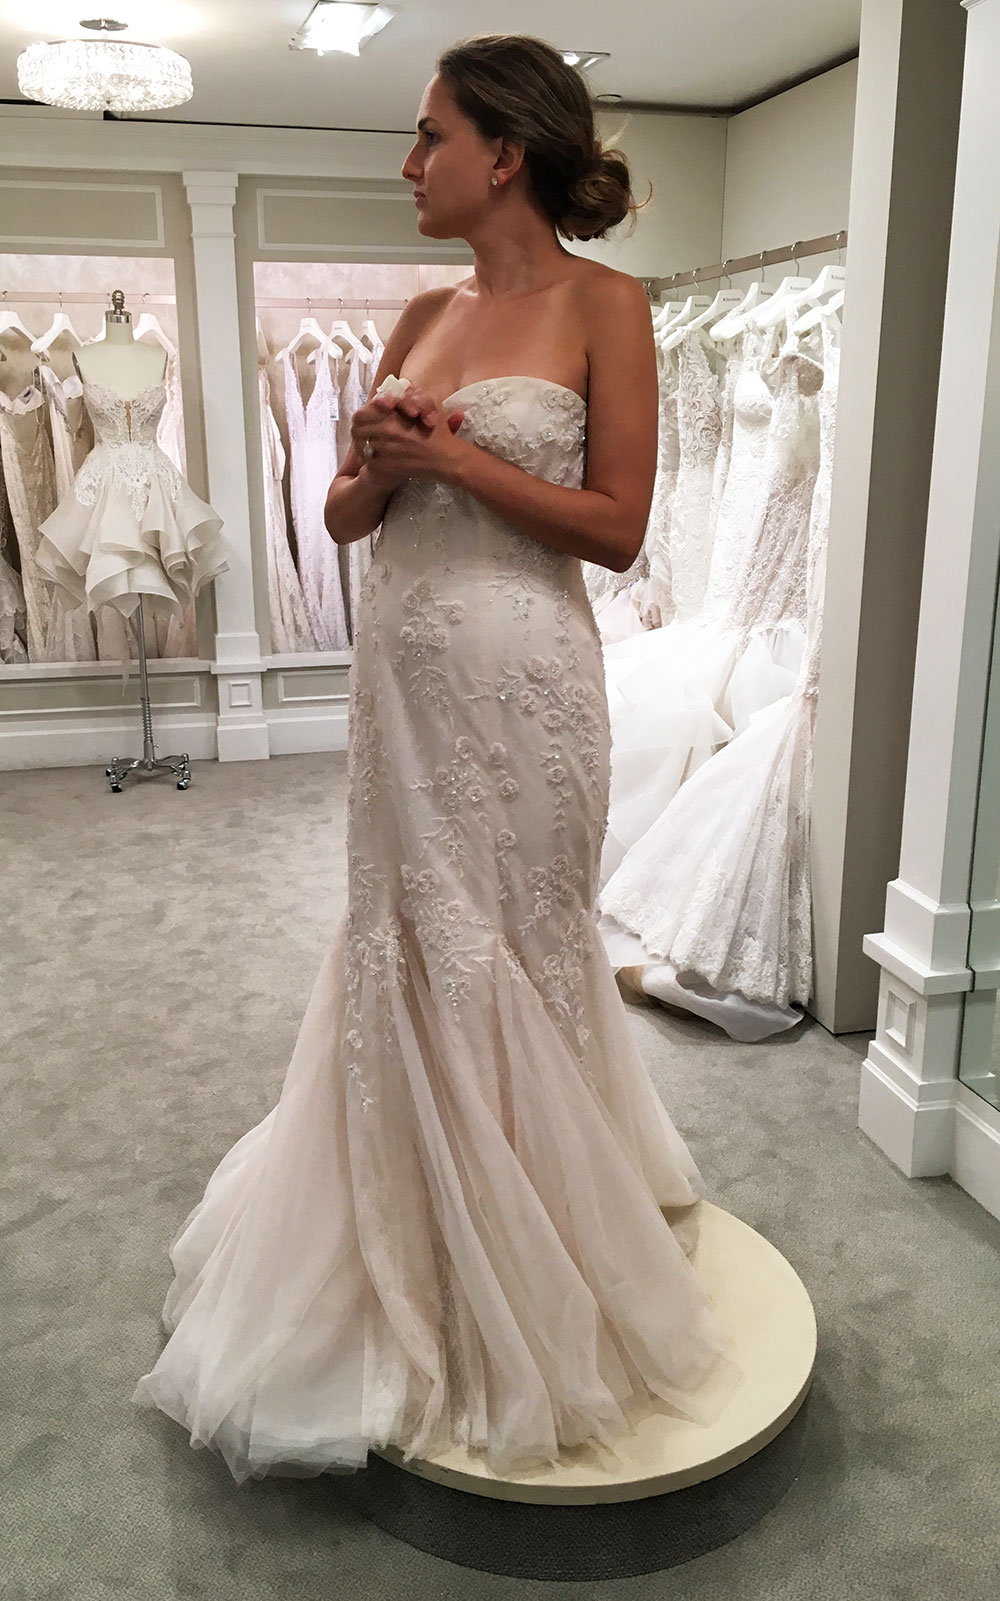 Discovering my  actual  wedding gown. It was the last one I tried on, as the store was closing for the night.